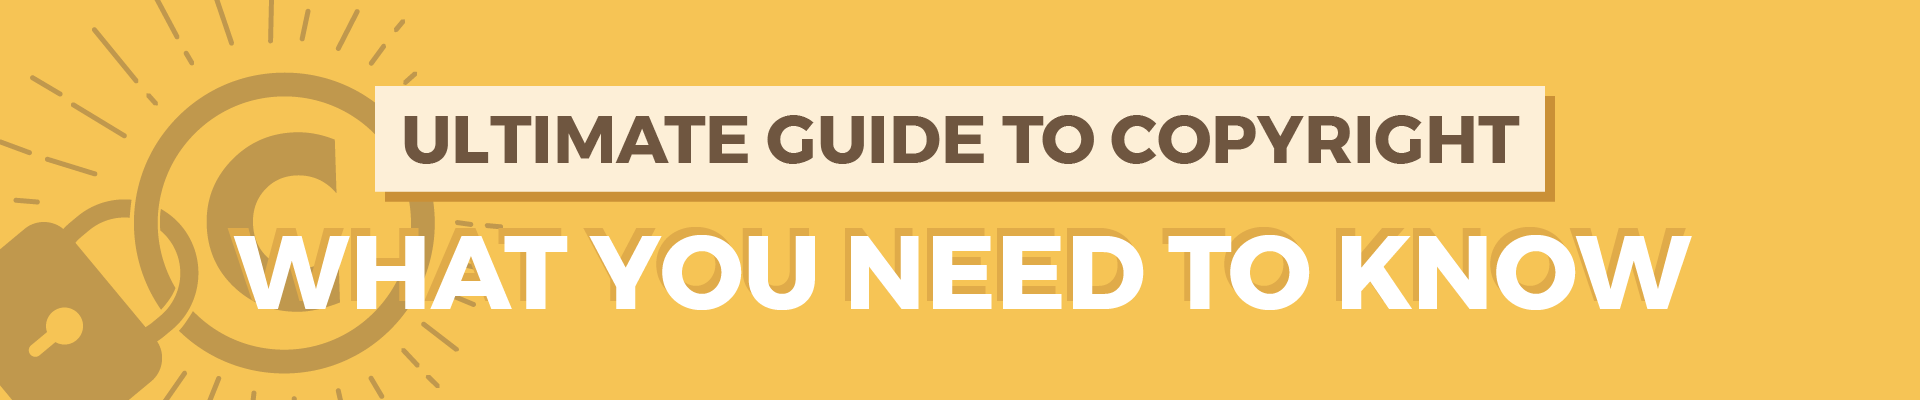 Ultimate Guide To Copyright How To Start An Llc